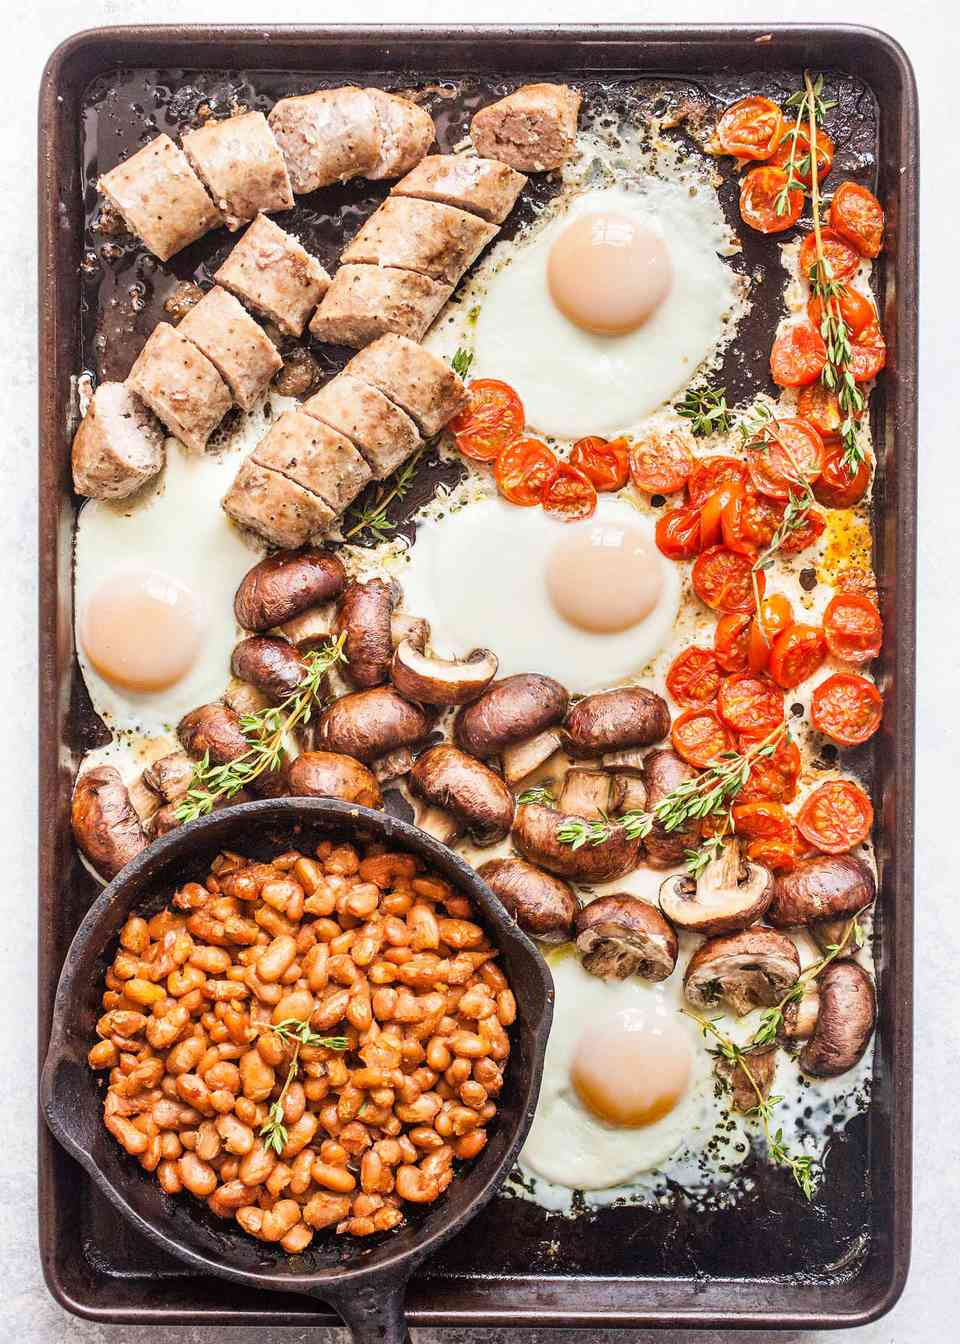 English Breakfast all on one sheet pan, with a pot of beans, cracked eggs, roasted tomatoes and potatoes, and sausages